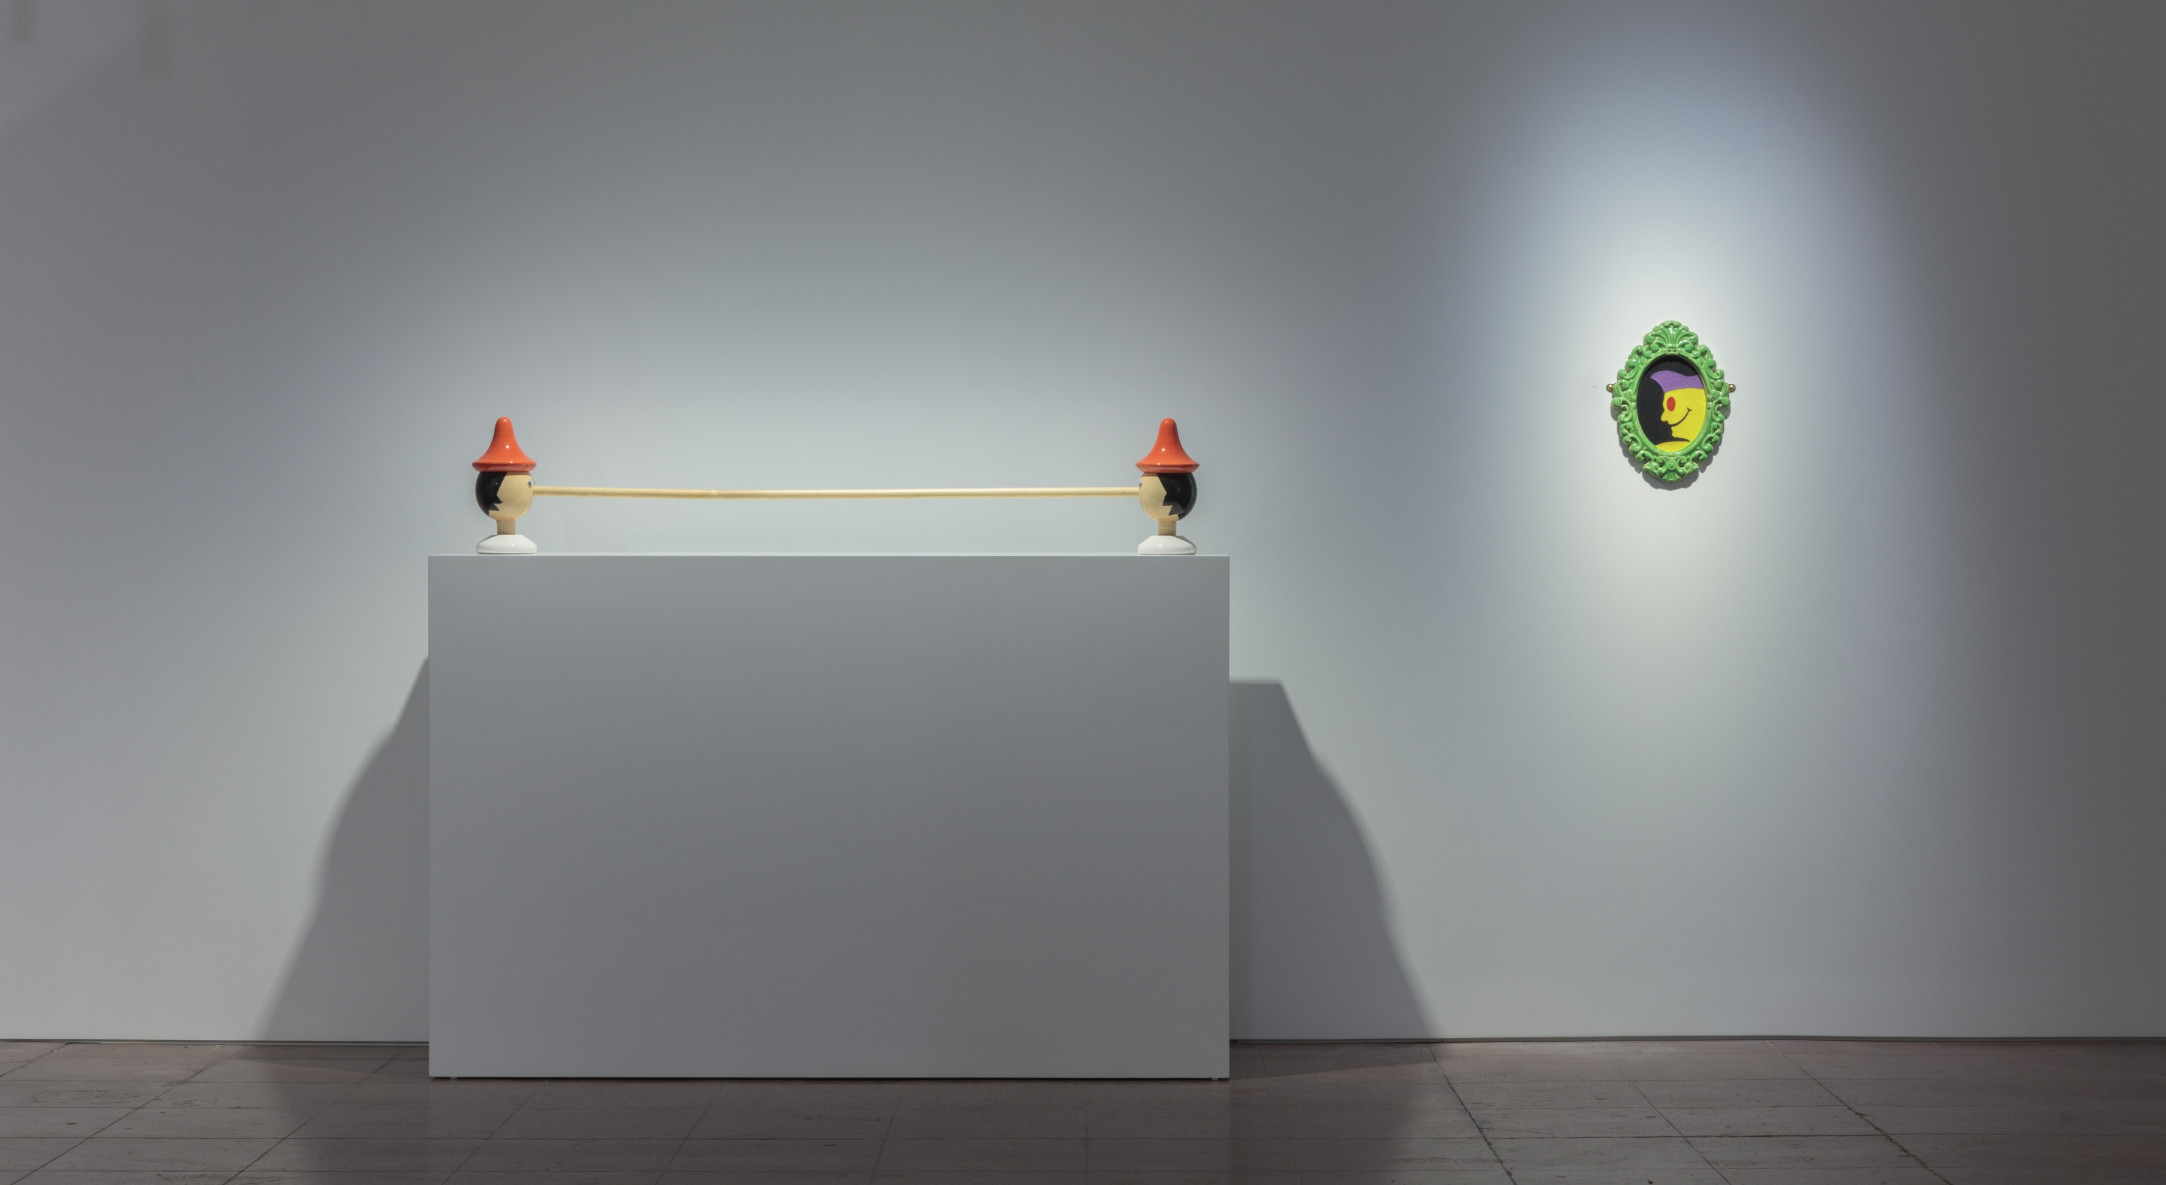 Installation view of Richard Slee, Perfect Pie, at Hales Gallery New York, 2019